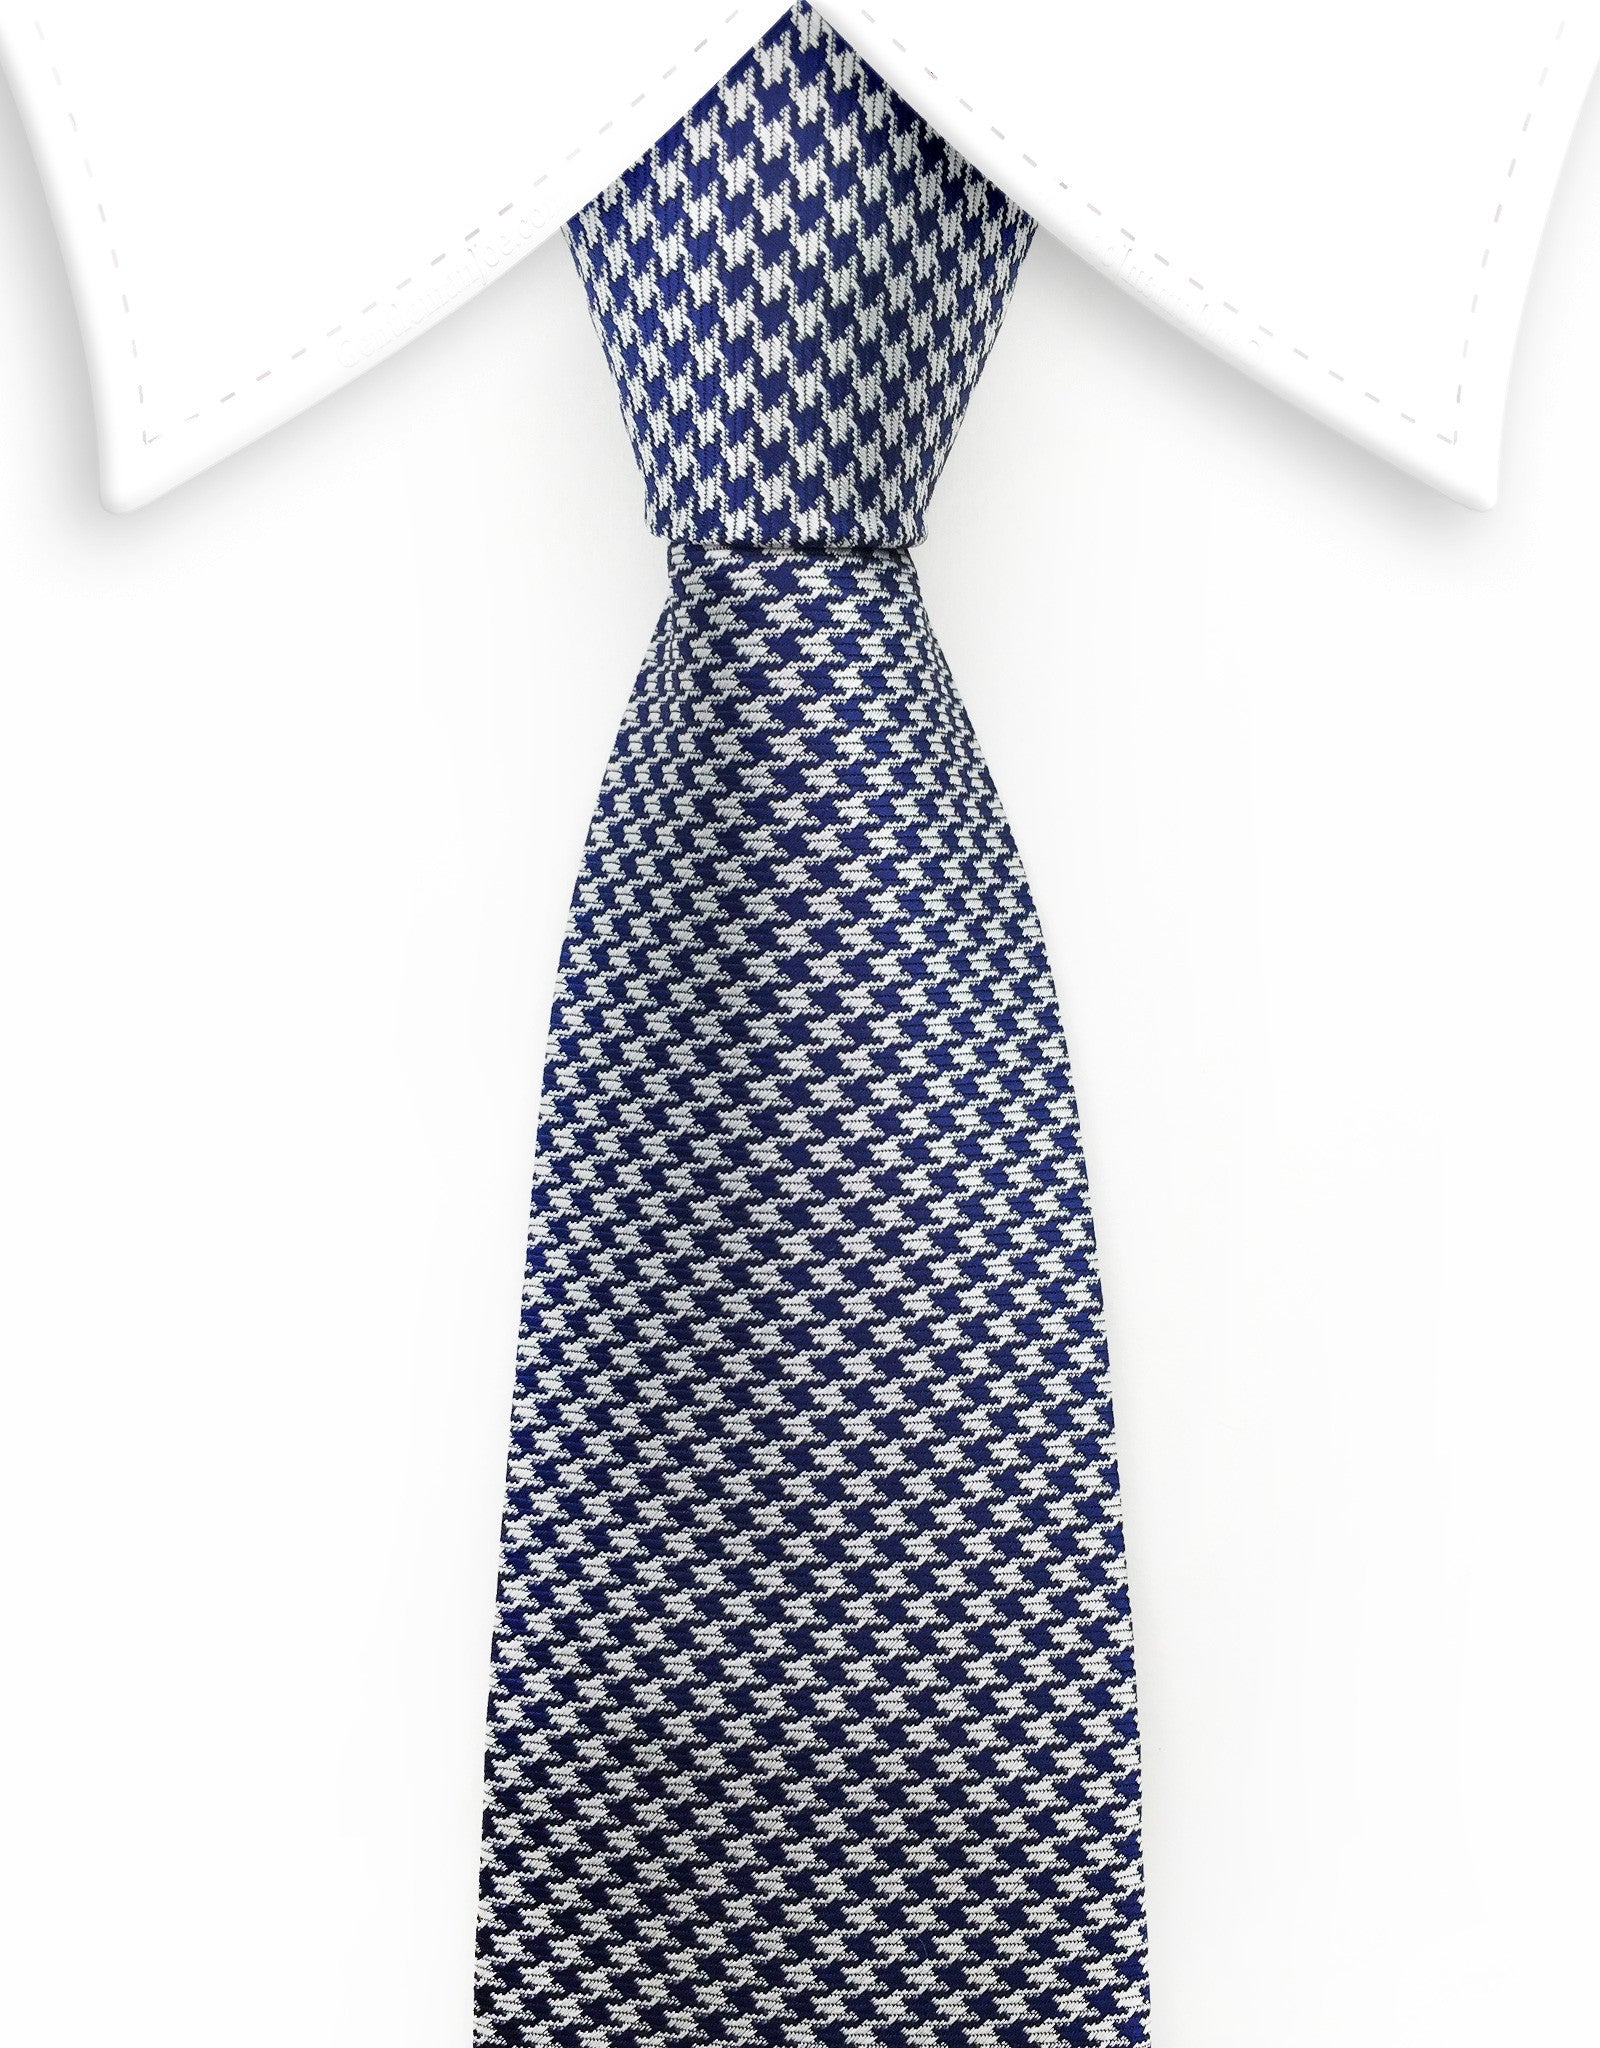 Navy blue and silver houndstooth tie